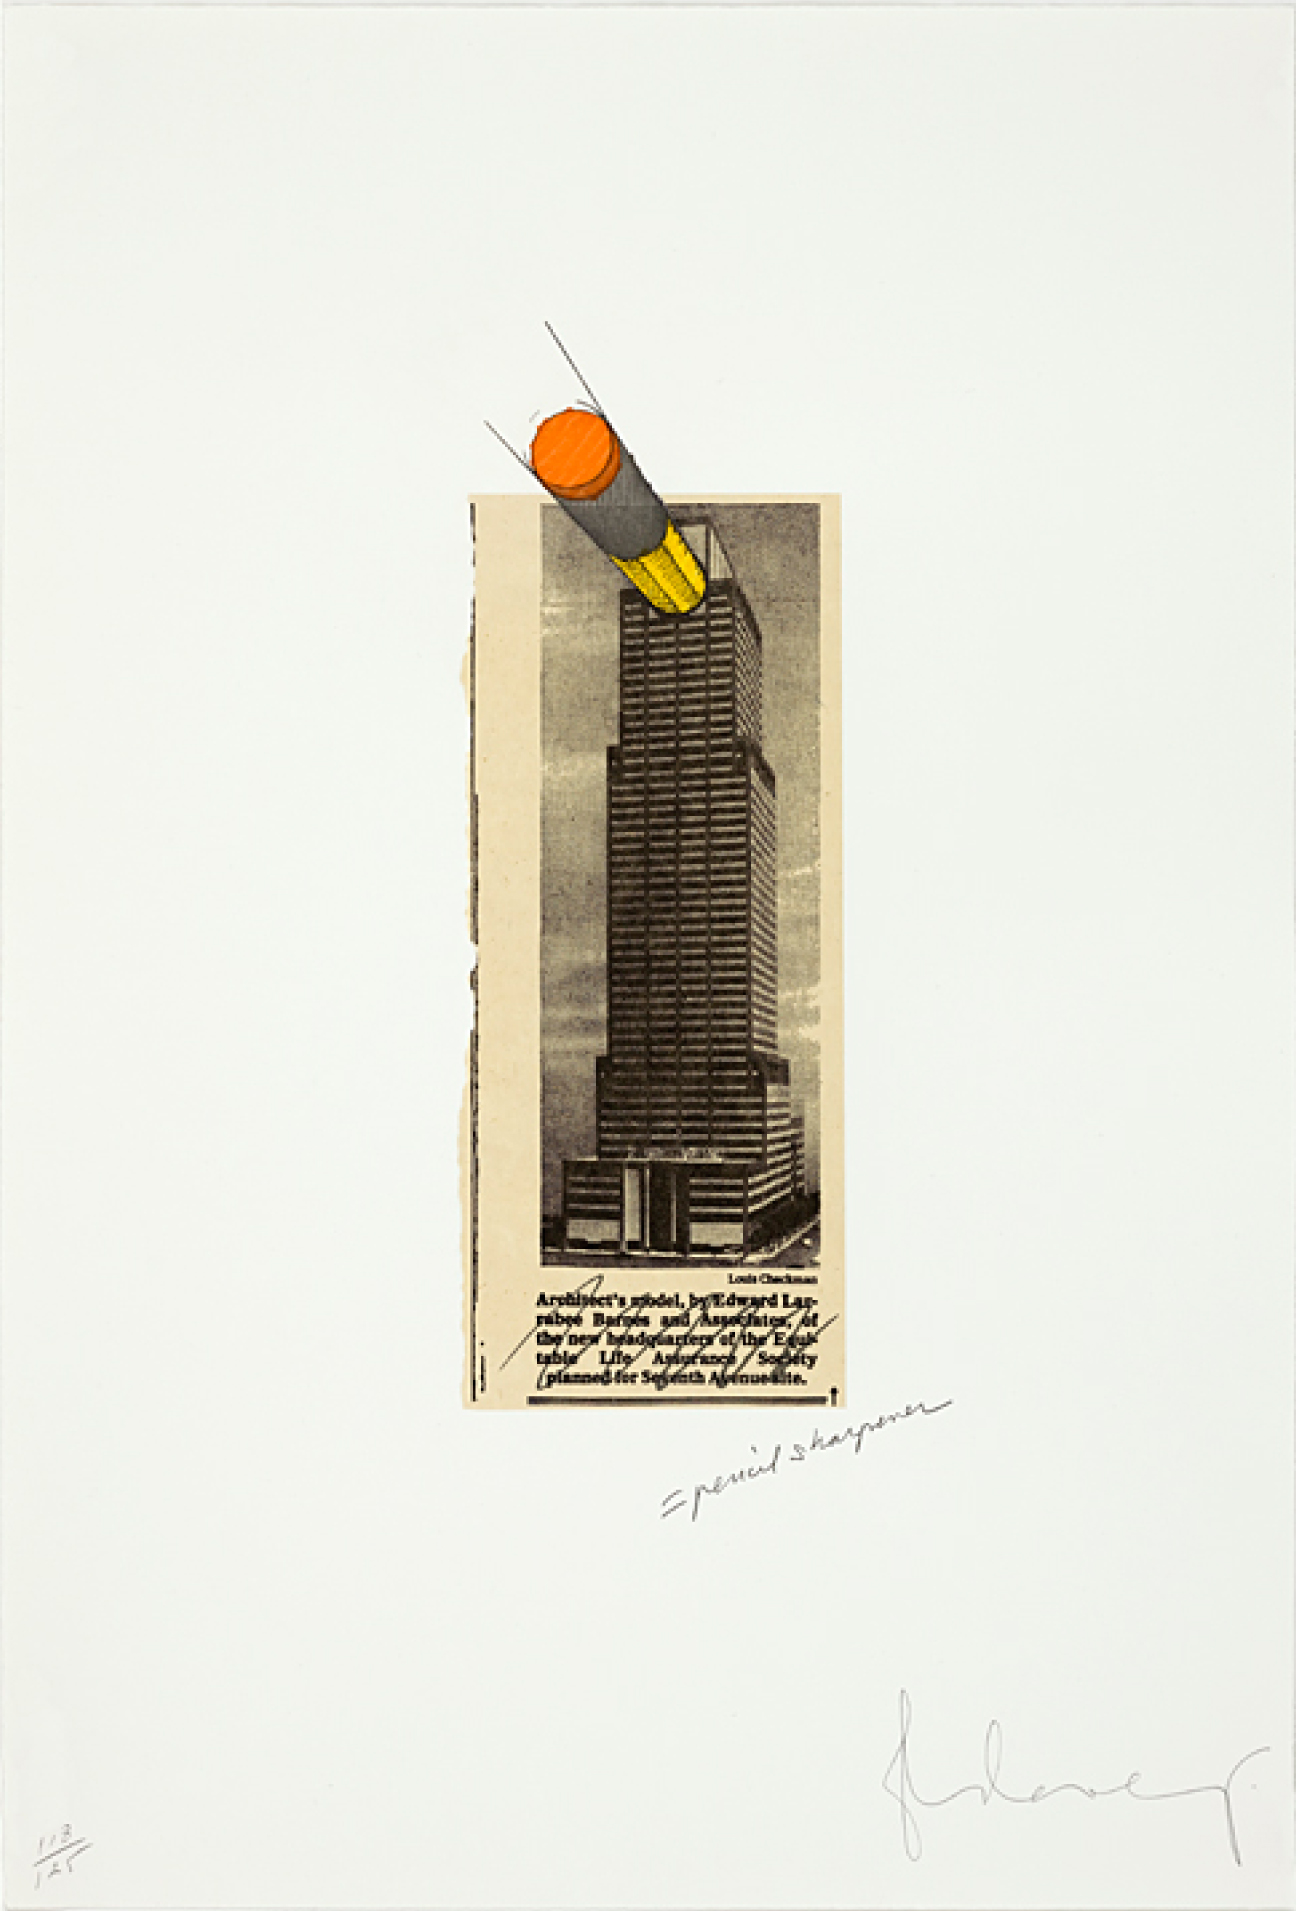 Claes Oldenburg, Equitable Building as a Pencil Sharpener, 1995, Self-ground etching, aquatint, and photographic, 21h x 14 1/4w in